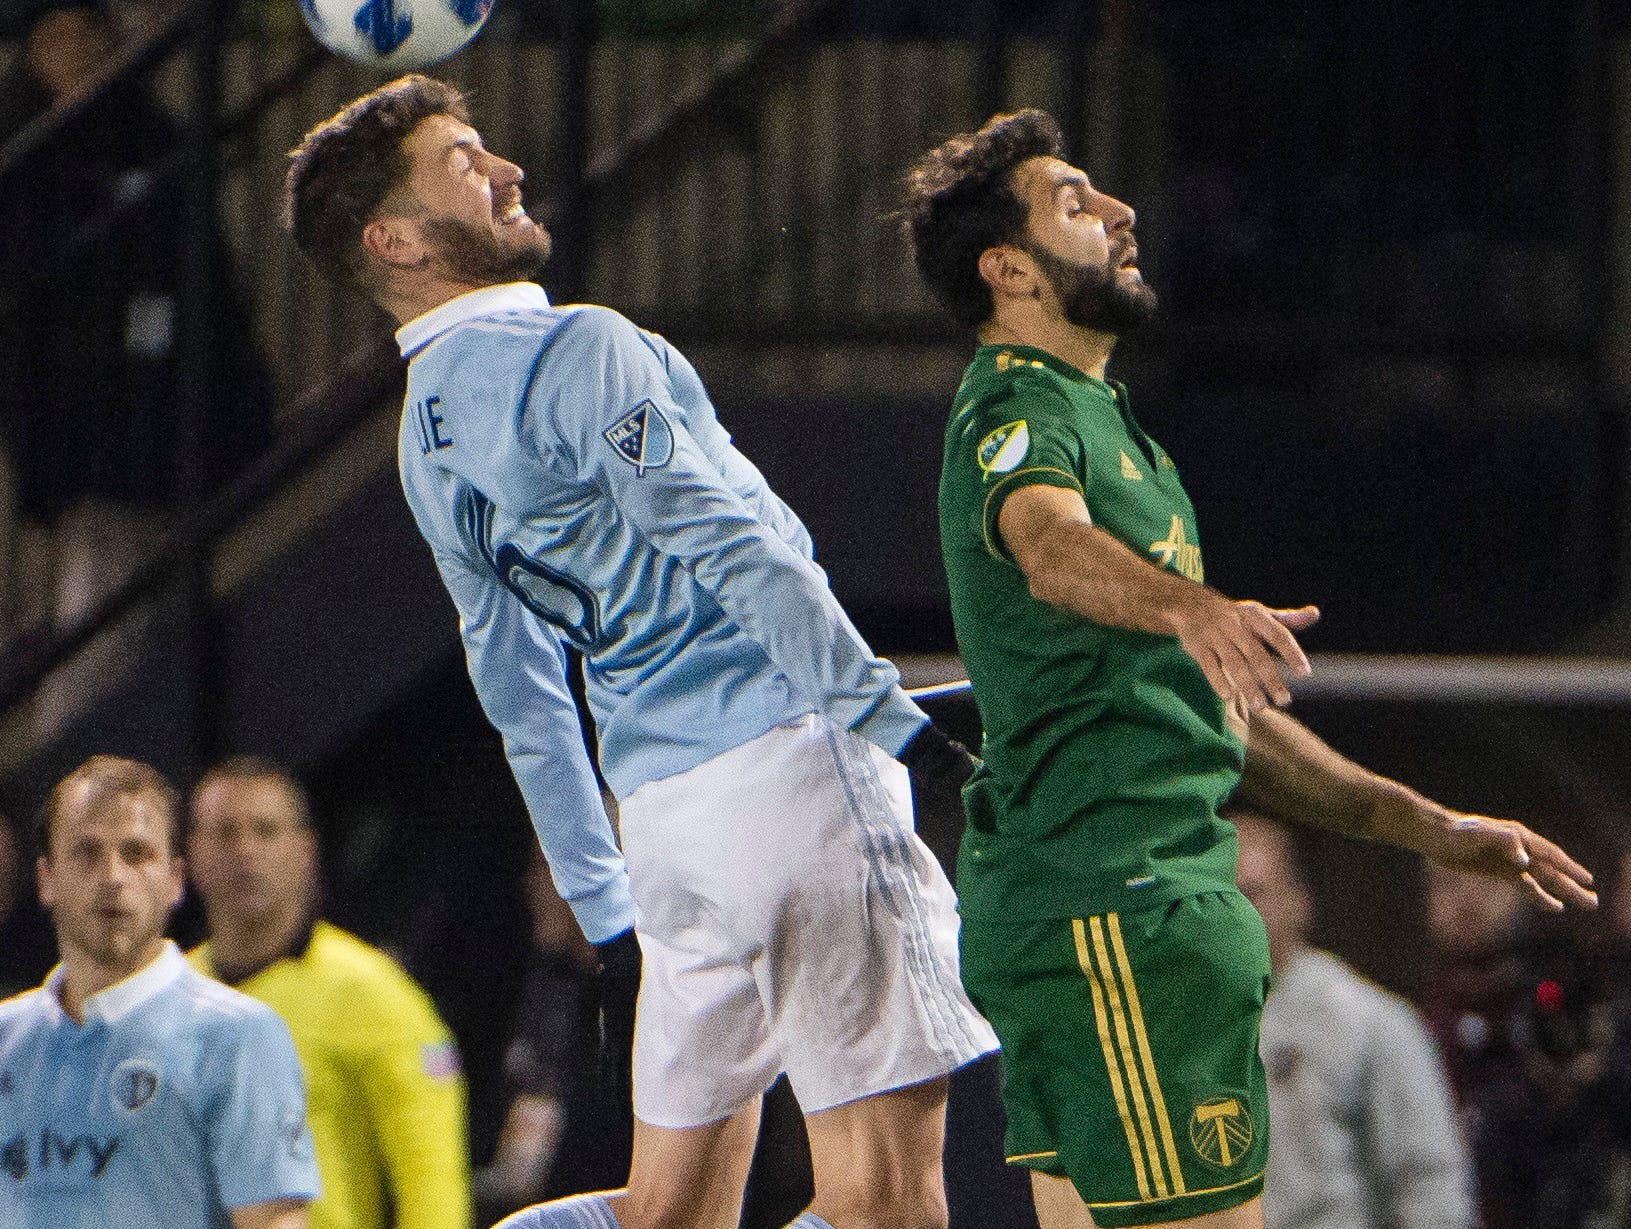 Nov 25, 2018; Portland, OR, USA; Sporting Kansas City midfielder Ilie Sanchez (6) wins a header against Portland Timbers midfielder Diego Valeri (8) during the second half in the first leg of the MLS Western Conference Championship at Providence Park. The game ended tied 0-0.  Mandatory Credit: Troy Wayrynen-USA TODAY Sports